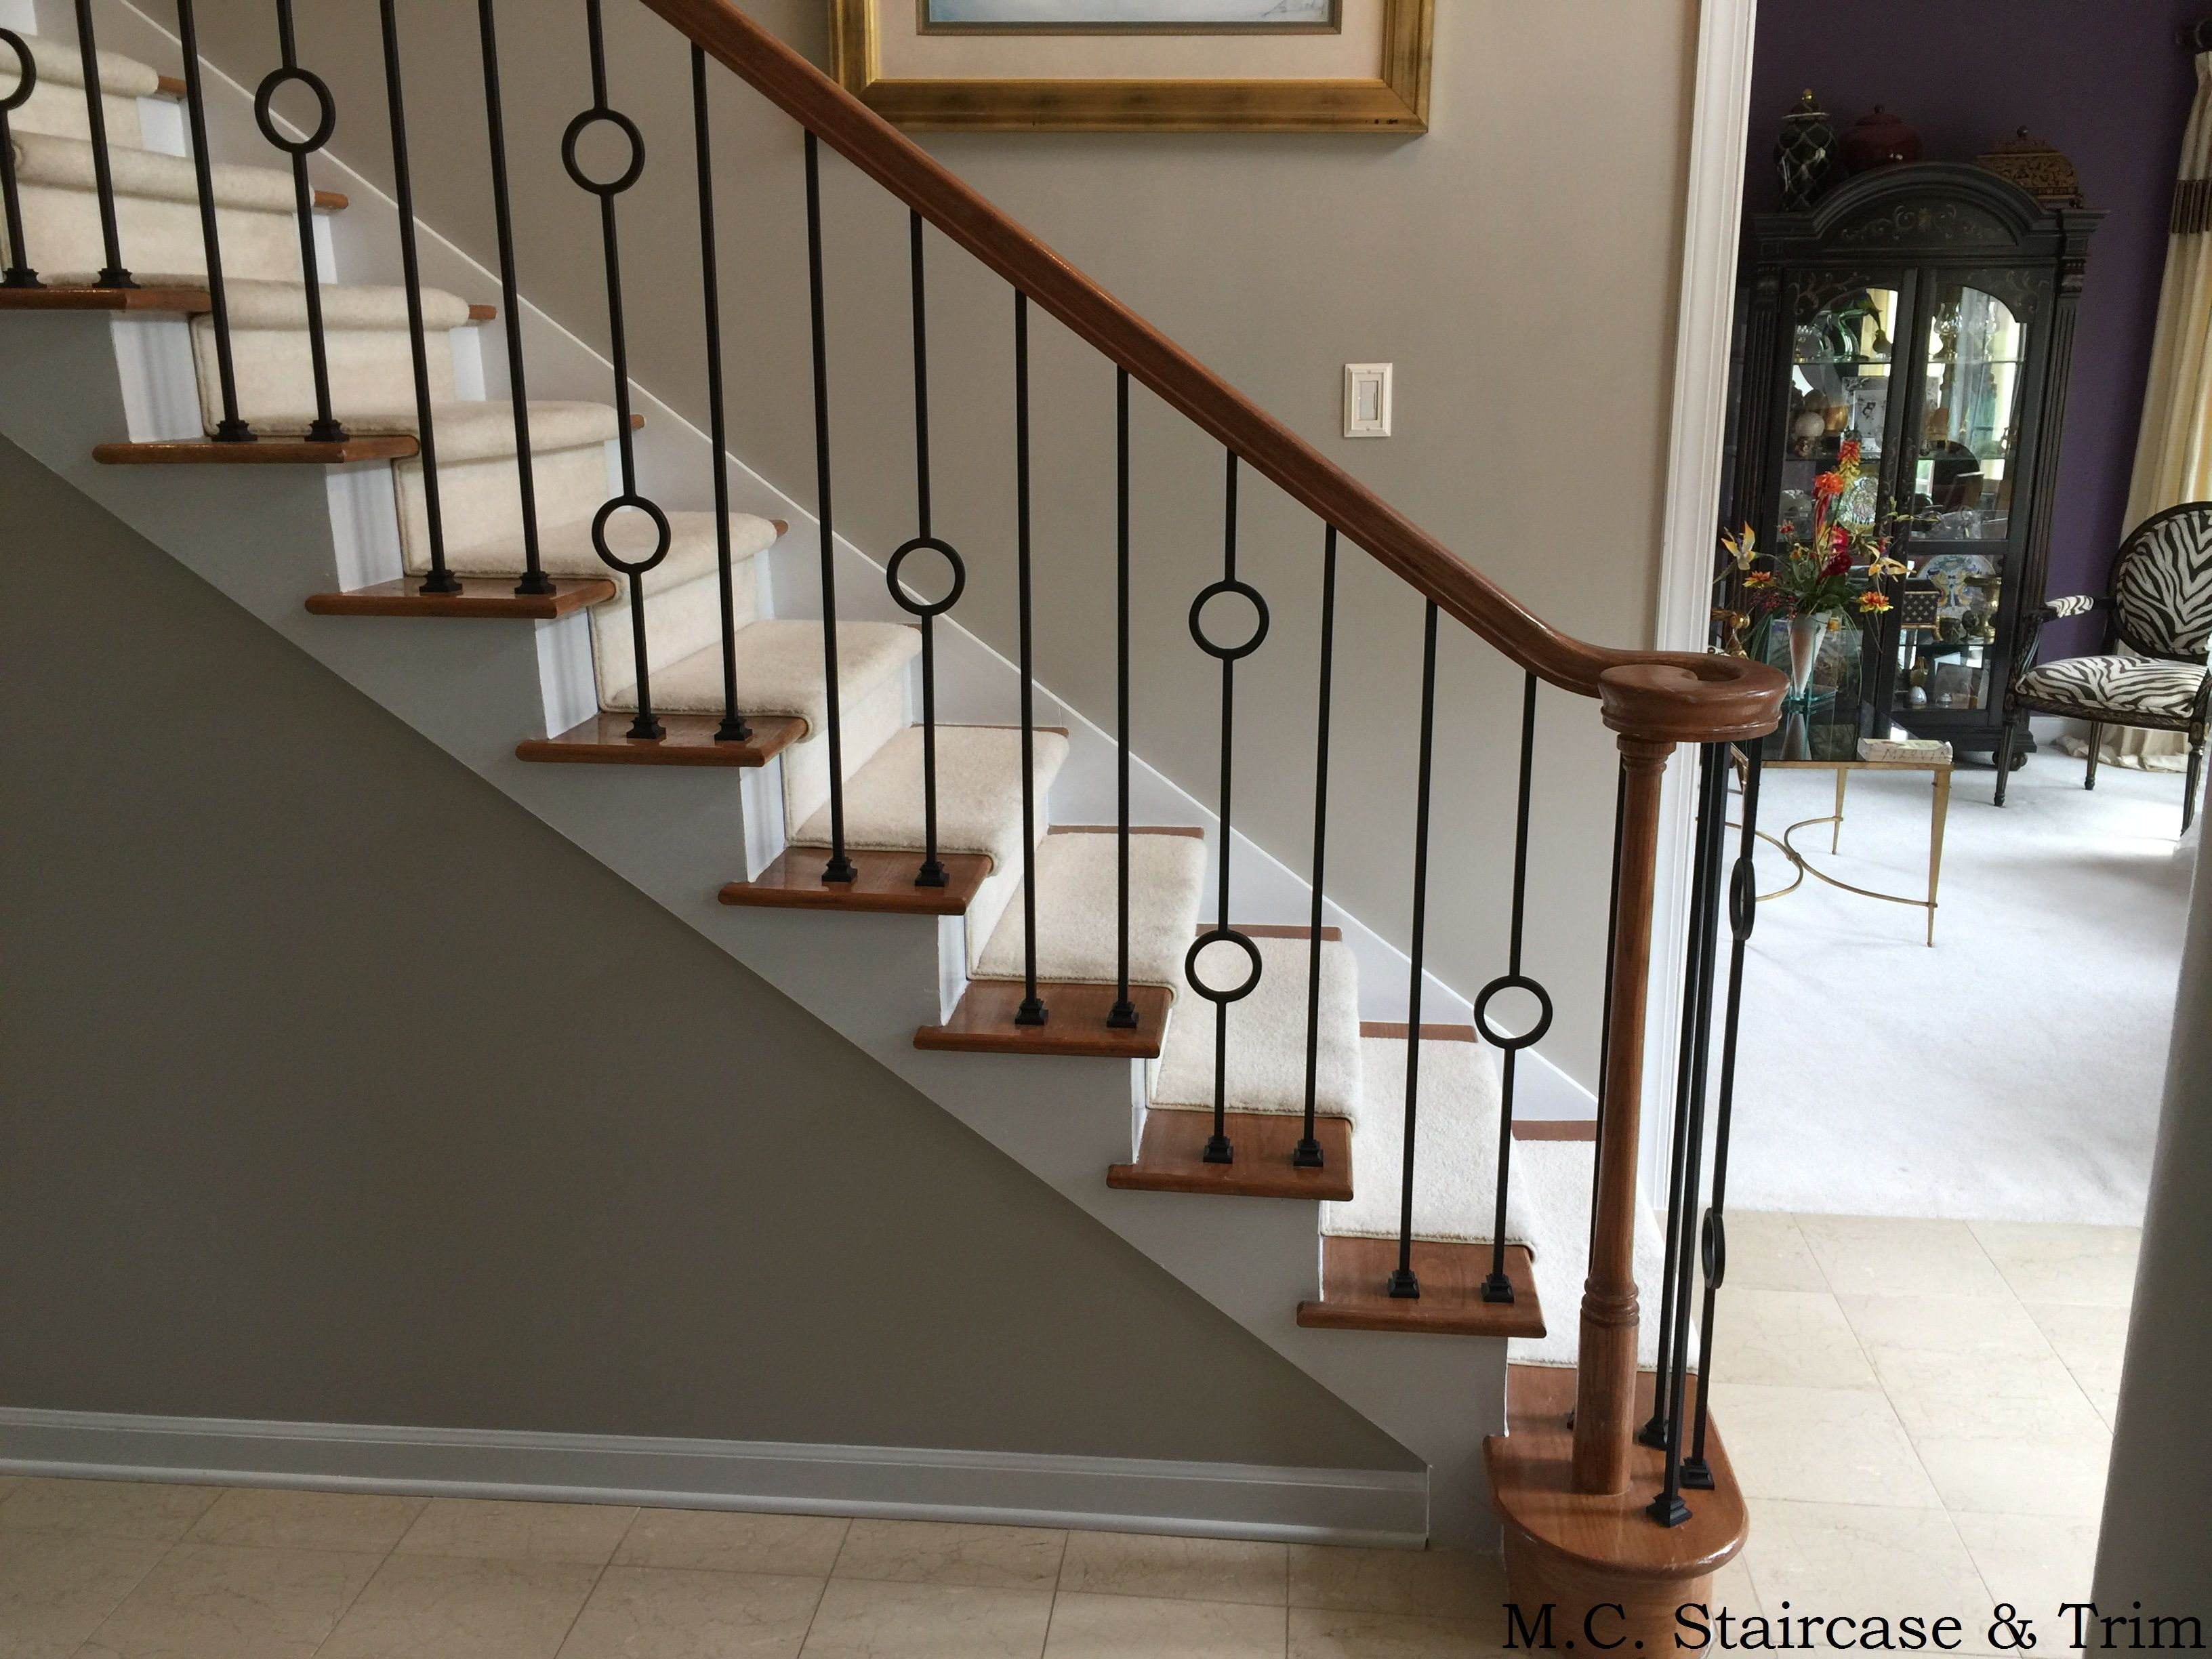 Perfect After The Iron Baluster Upgrade From M.C.Staircase U0026 Trim. Removal Of  Wooden Balusters And